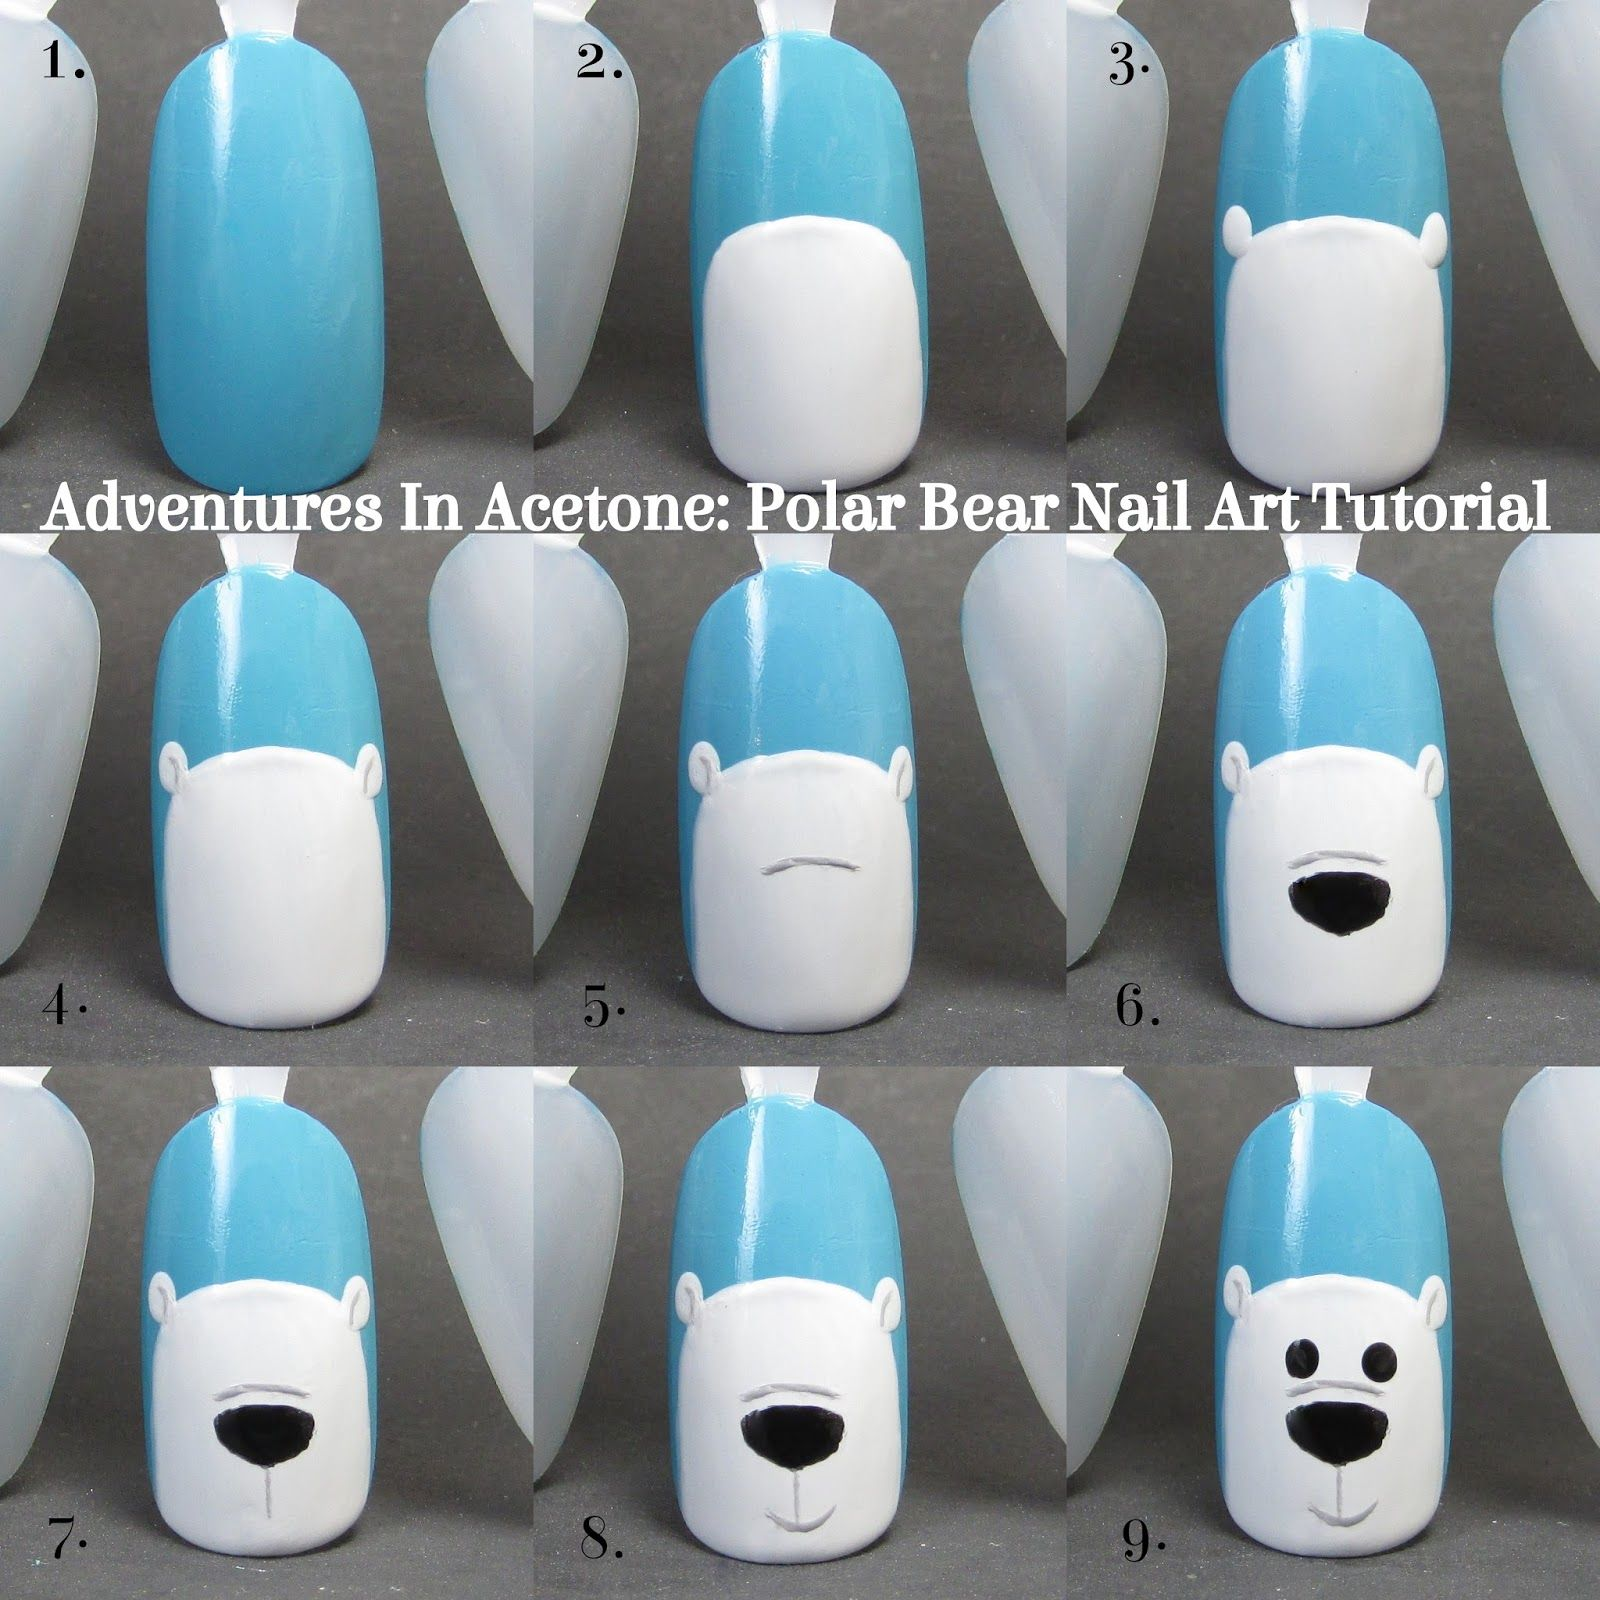 adventures in acetone tutorial tuesday polar bear nail. Black Bedroom Furniture Sets. Home Design Ideas